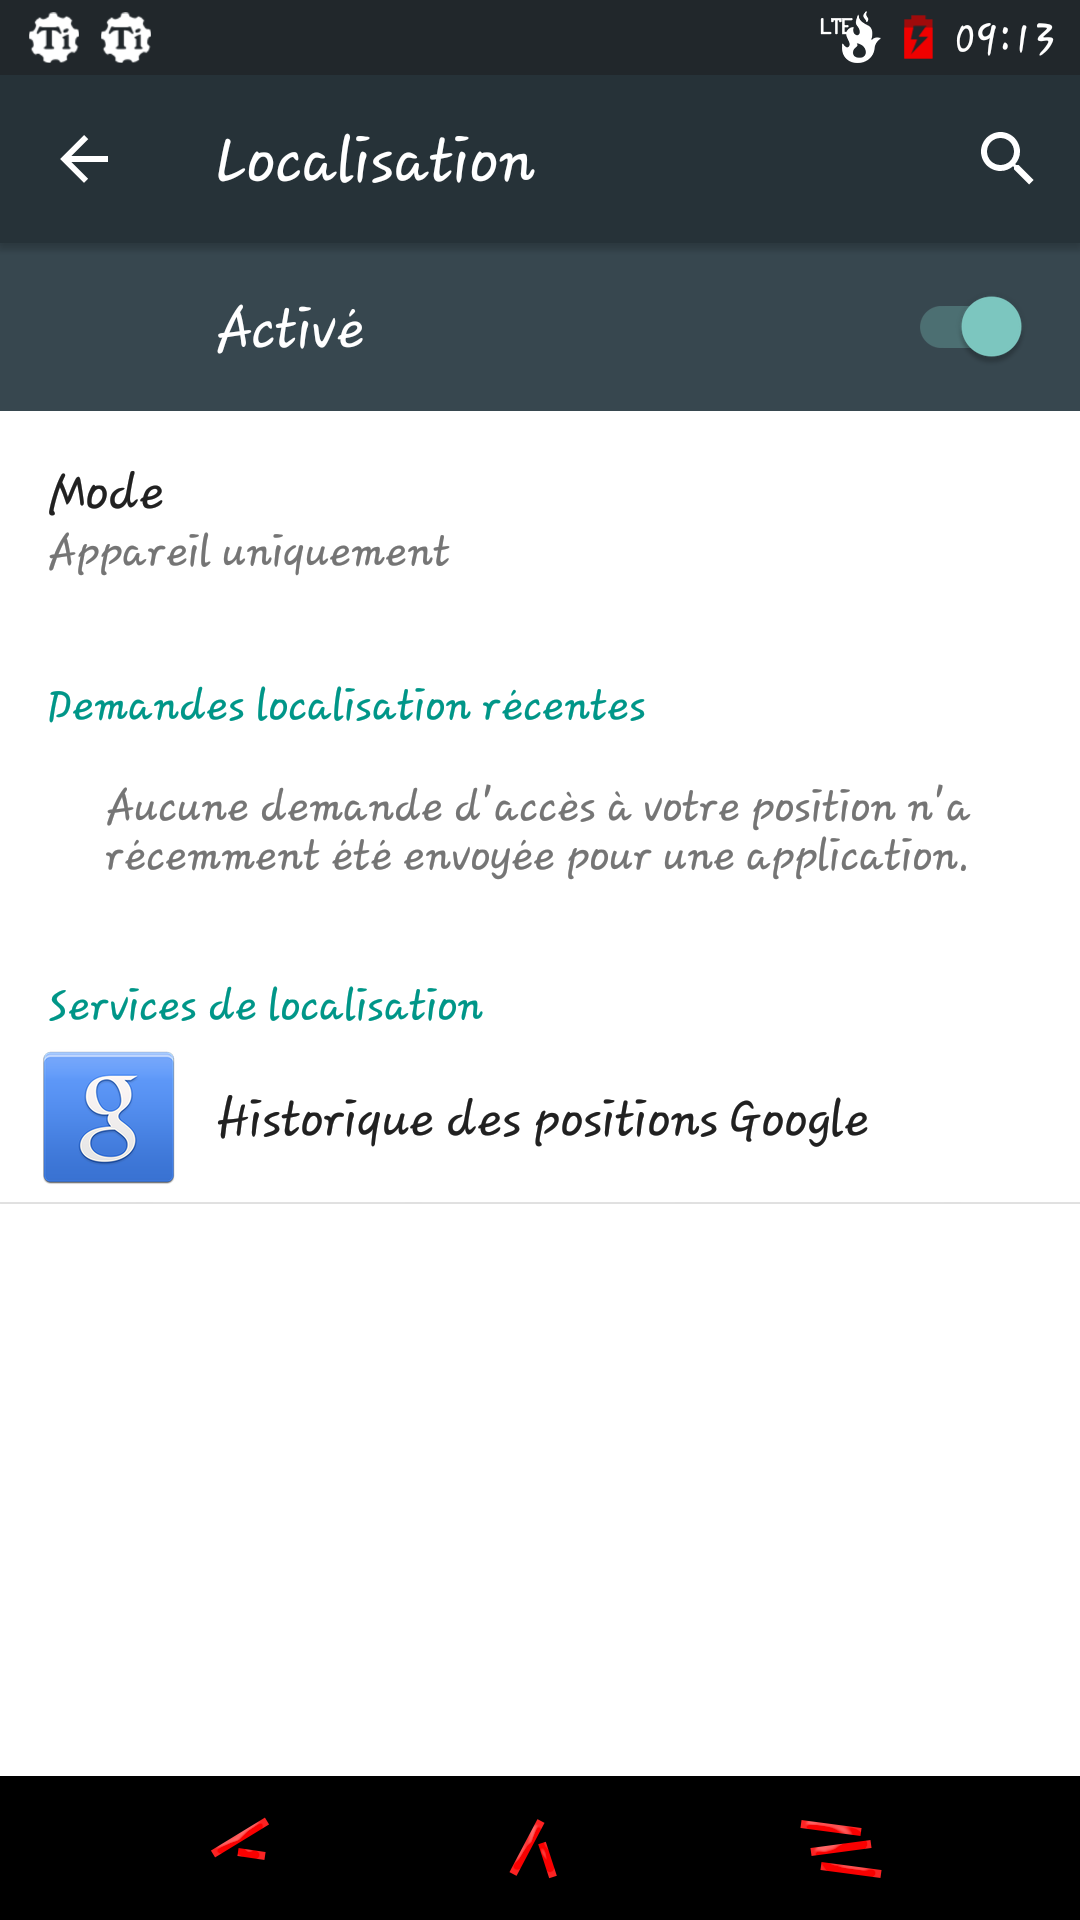 [VIE PRIVEE-PARAMETRES GOOGLE] Application Paramètres Google au microscope 14301245769525